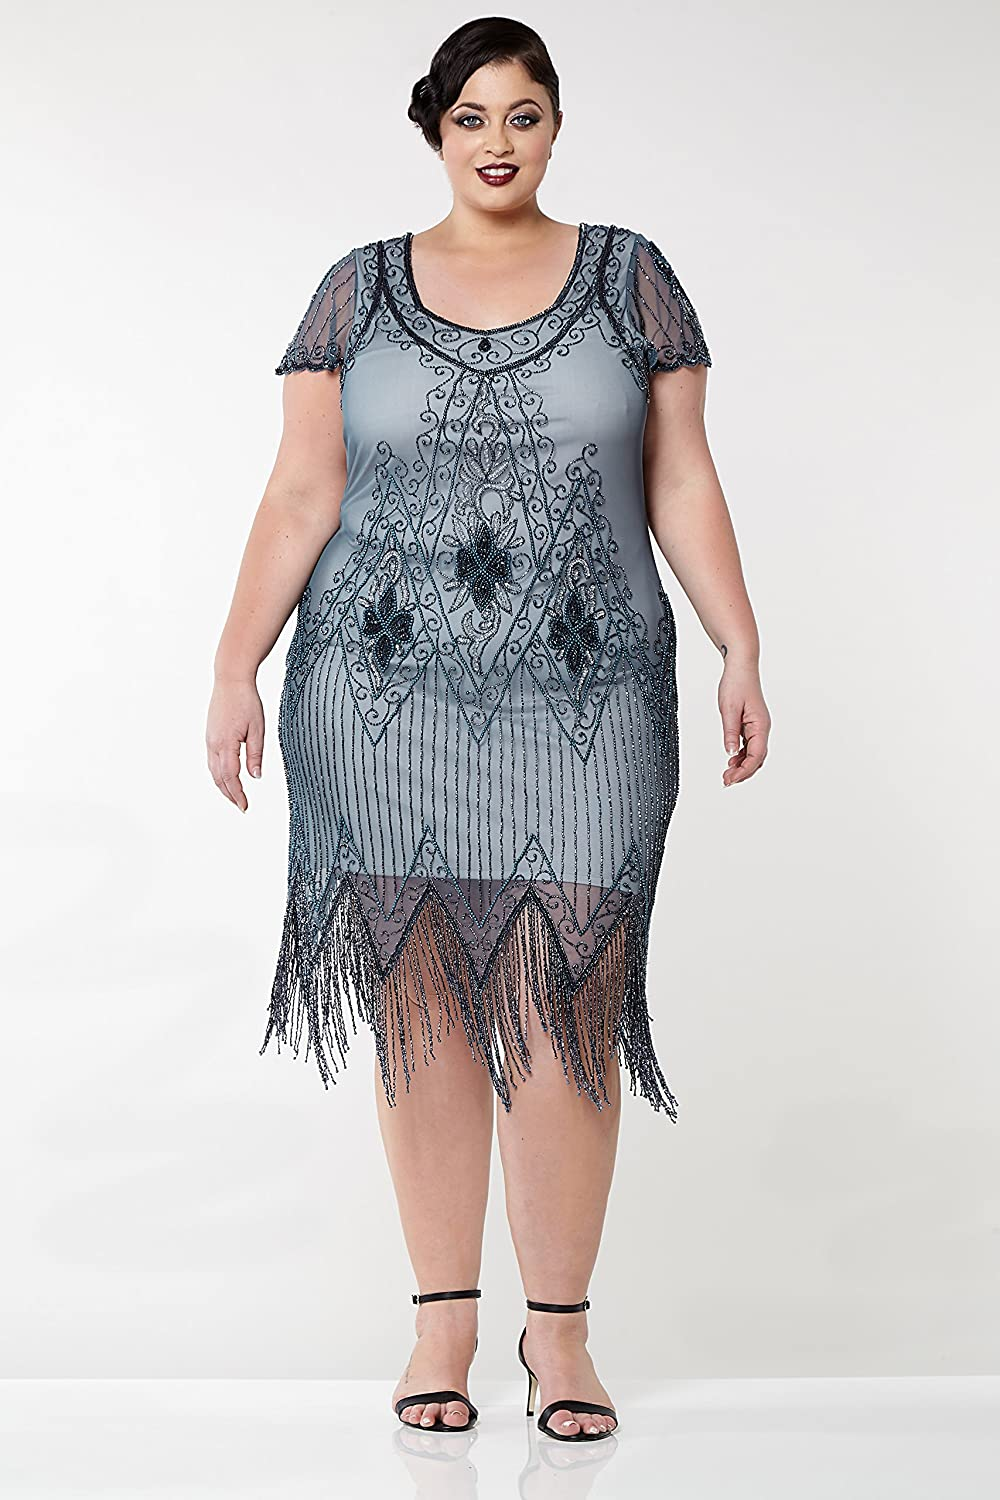 1920s Clothing gatsbylady london Annette Vintage Inspired Fringe Flapper Dress in Blue Grey $124.86 AT vintagedancer.com